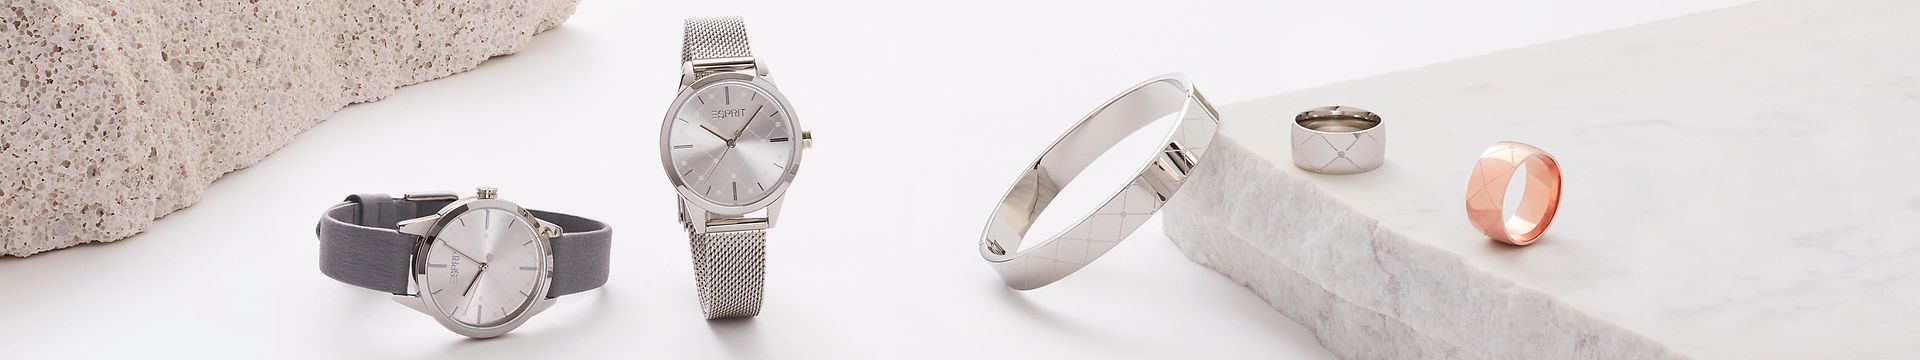 152021 - Women - Accessories - Watches -Leather Bracelet - TC banner - IMG